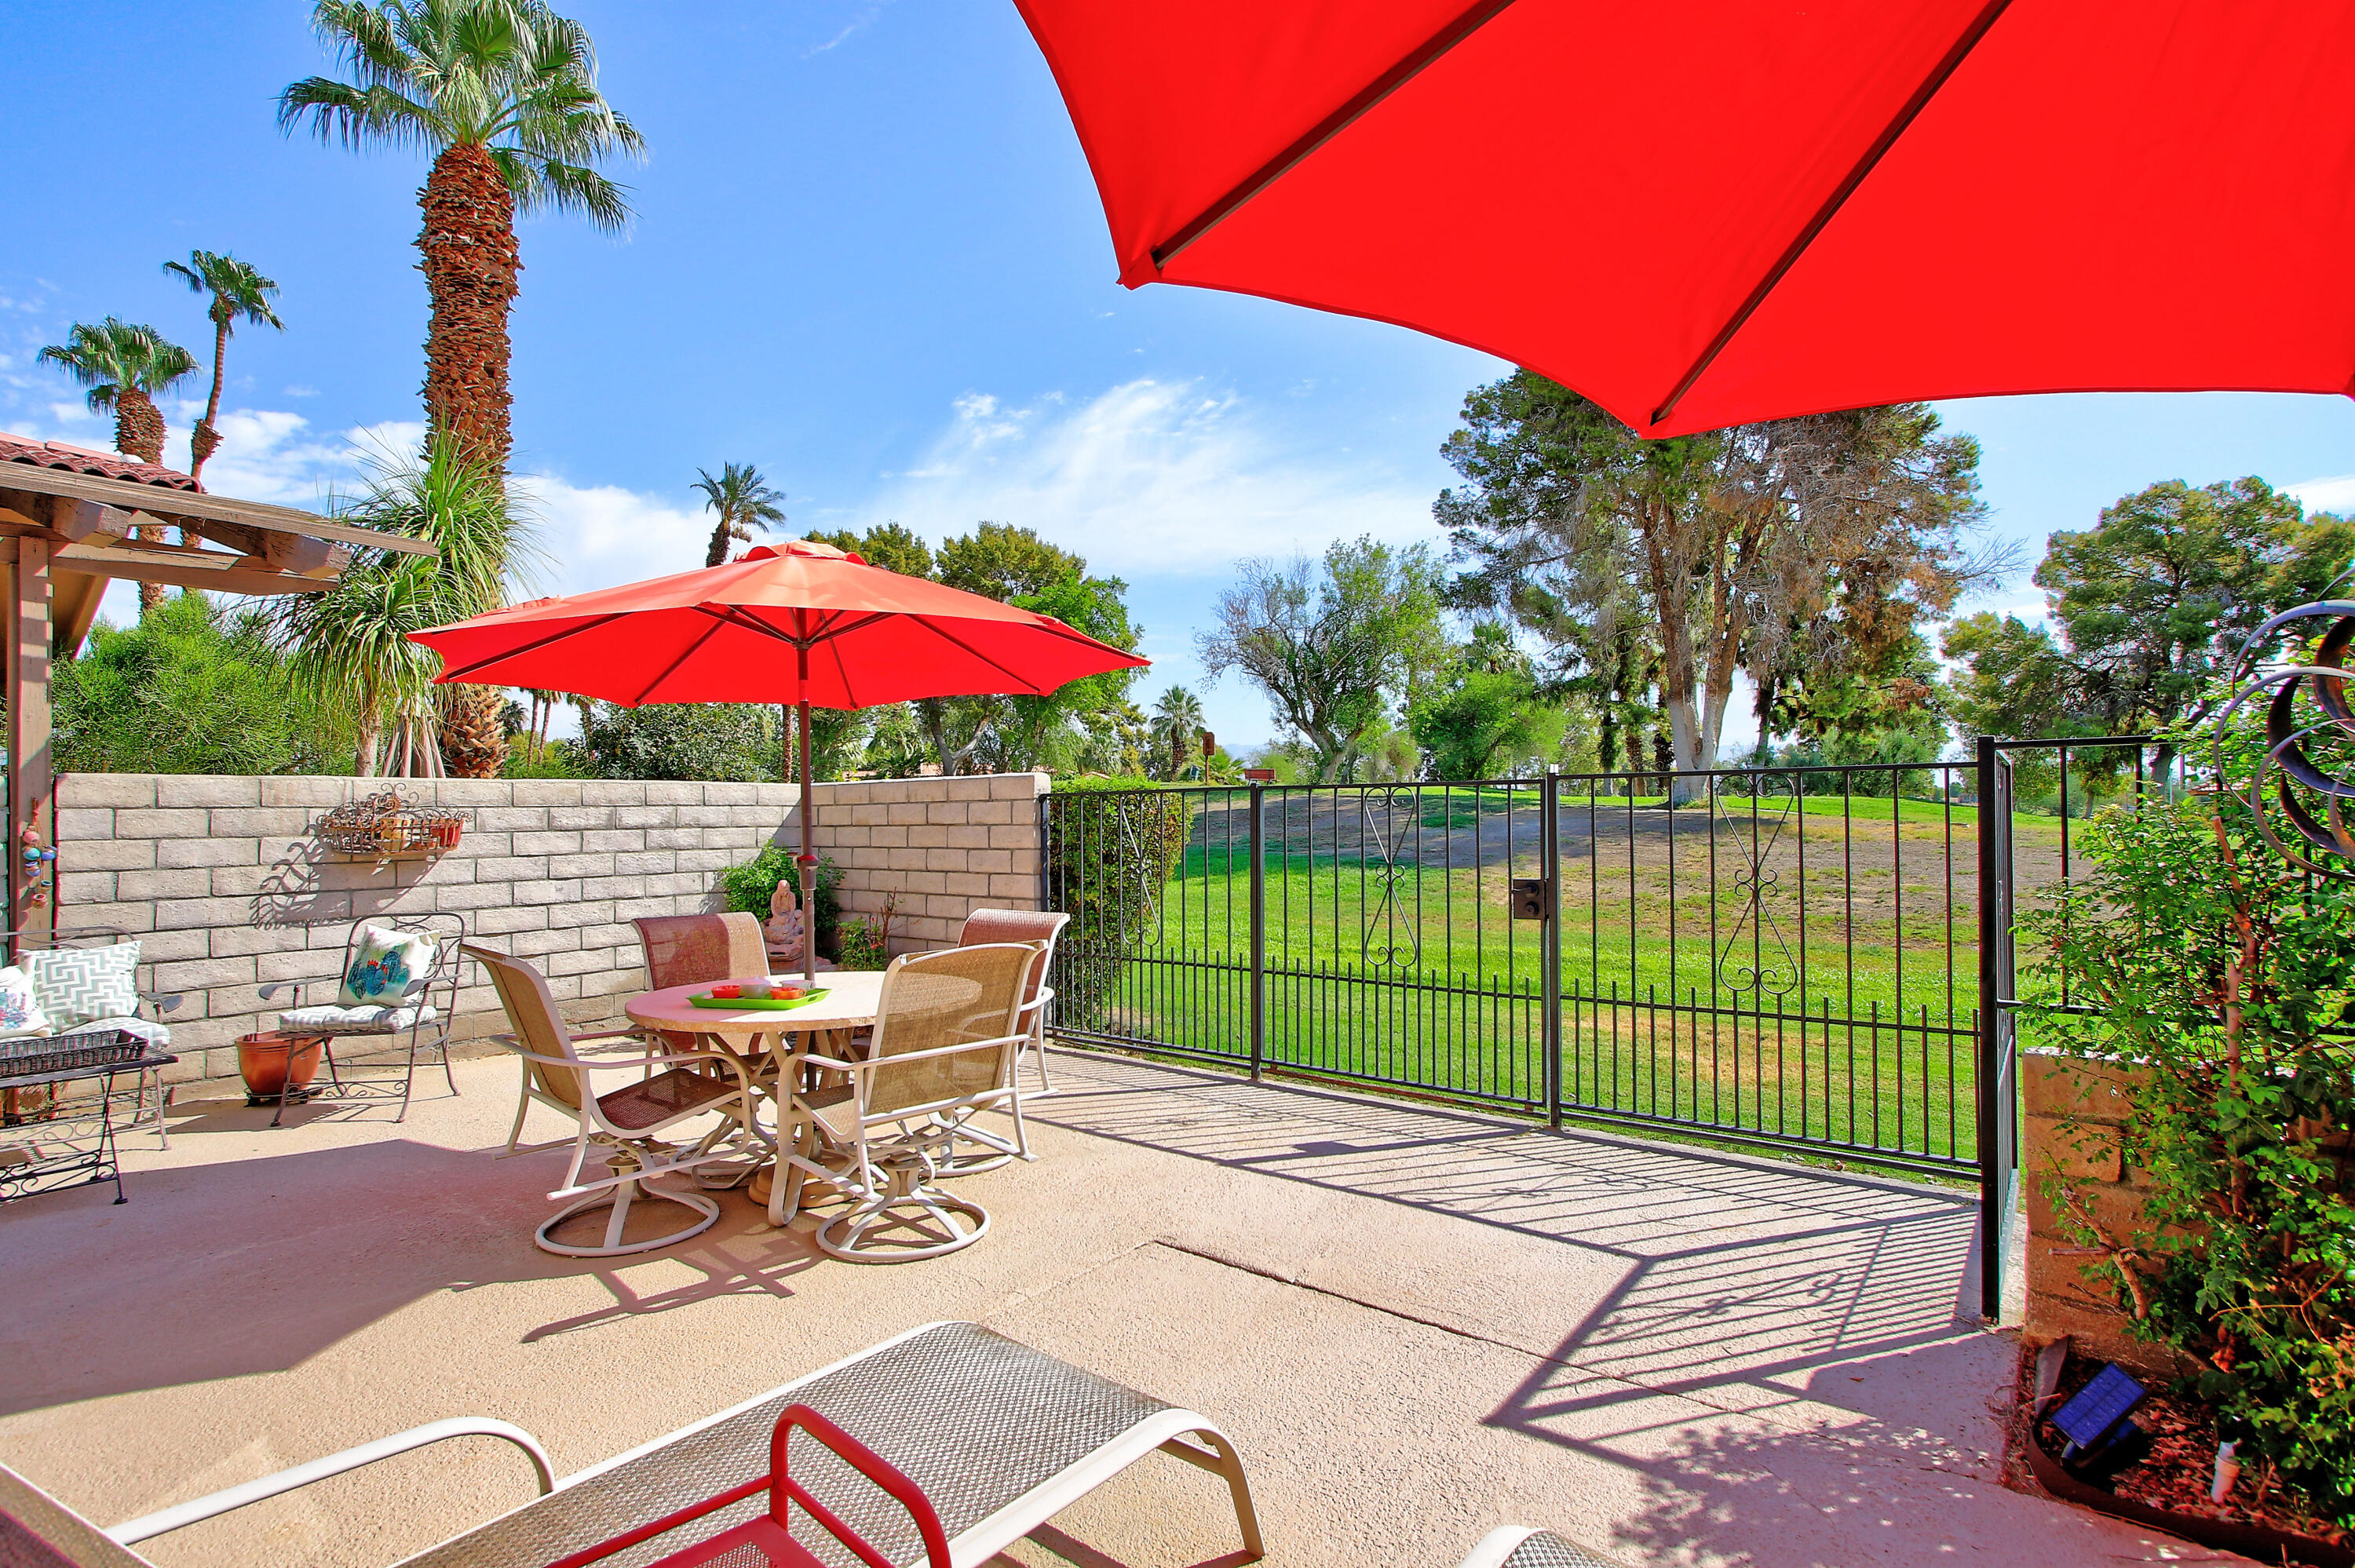 This pristine golf course condo in Indian Palms Country Club is an ideal vacation home or full-time residence in beautiful Coachella Valley.  Partially furnished, this golf course home overlooking the 1st Tee of the Indian Palms Mountain course, offers a large patio, with bubbling fountain and comfy chairs, offering the ideal patio setting for sipping your morning coffee while watching golfers tee off, or having Cocktails with friends at Happy Hour.   Inside, the condo boasts many lovely features, such as newer bathroom commode and vinyl flooring in the Master Bath; a closet with built-in organizers; an ample kitchen with Breakfast Bar, top-of-the-line water filtration system, newer range, vinyl floors, pantry cabinet and tons of storage; 6-month old HVAC and Water Heater systems; and much, much more!  In addition, this condo is well-located in walking distance to Empire Polo Grounds, where Coachella and Stagecoach are held annually, in addition to world-class polo.  Shown by appointment only, this beautifully-maintained property is move-in ready, and is sure to sell quickly, so please make an appointment to see it now!